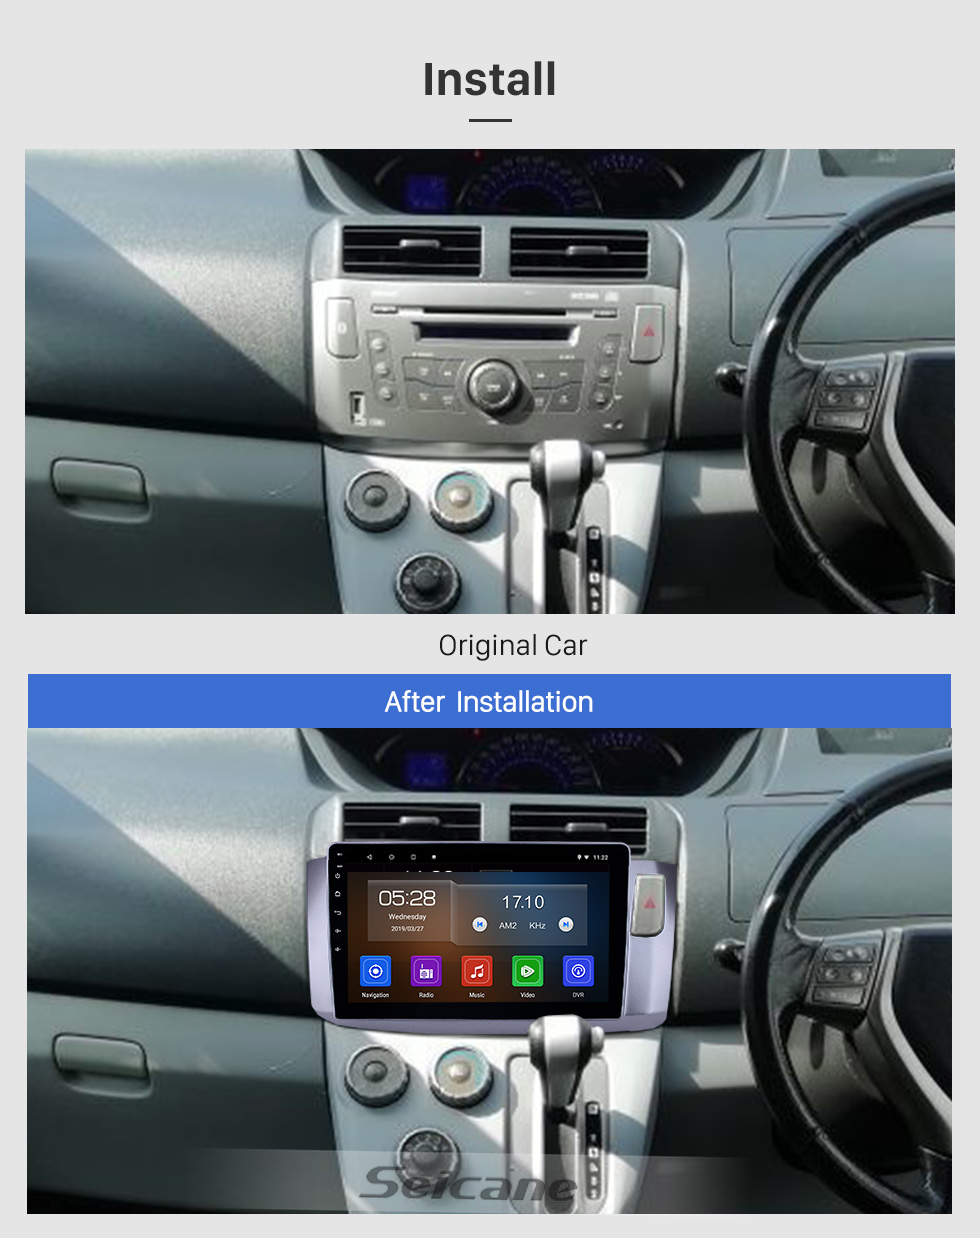 Seicane 10.1 pulgadas 2010 Perodua Alza Android 9.0 Navegación GPS Radio Bluetooth HD Pantalla táctil AUX USB WIFI Carplay compatible OBD2 DAB + 1080P Video